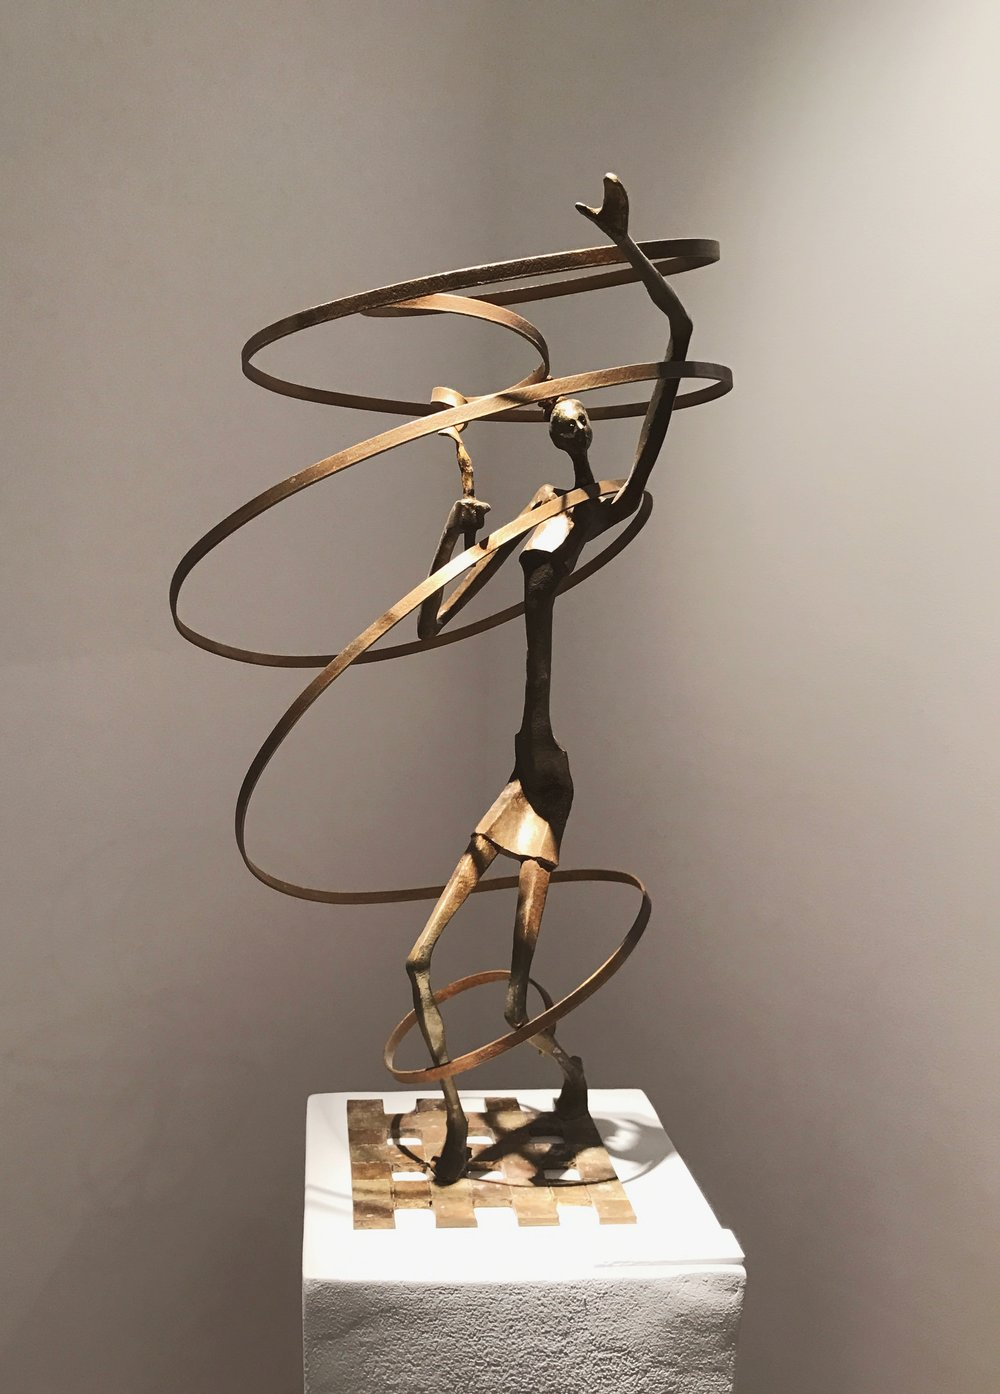 Nathan Doss   The Ribbon Dancer  Bronze  70 x 40 x 40 cm